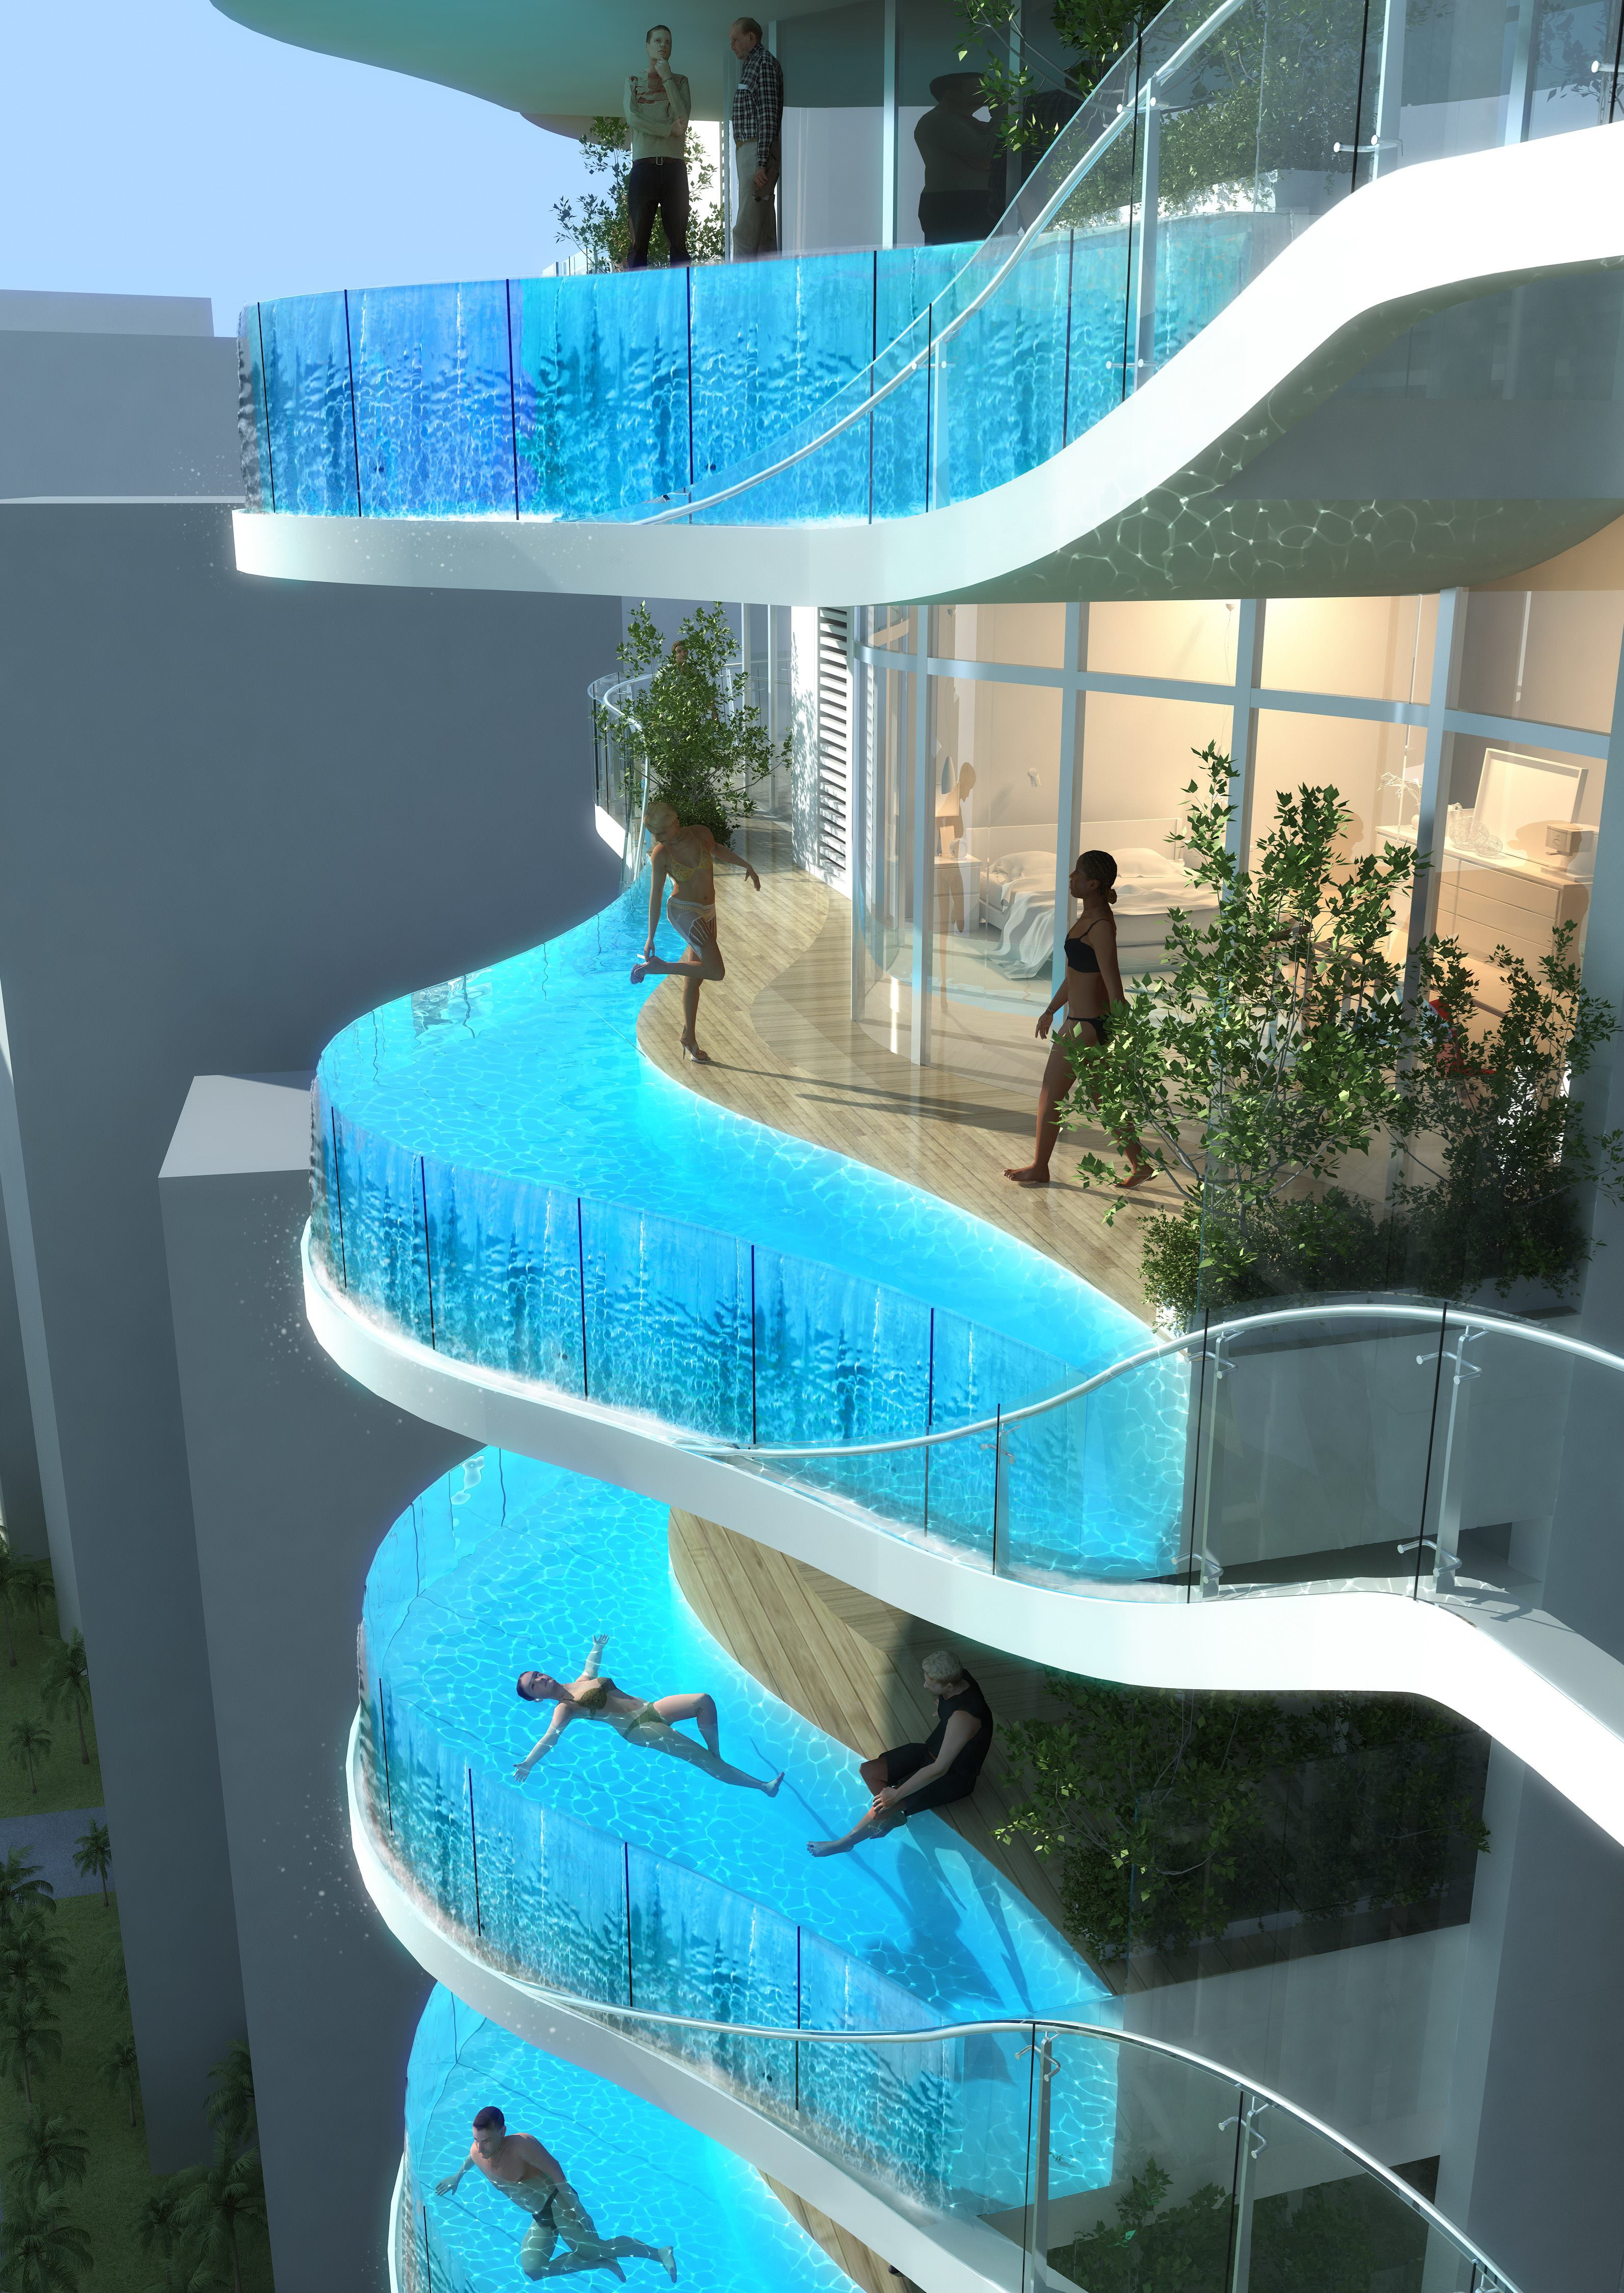 Hong kong architects create pool in the sky multifamily for Amenajari piscine exterioare